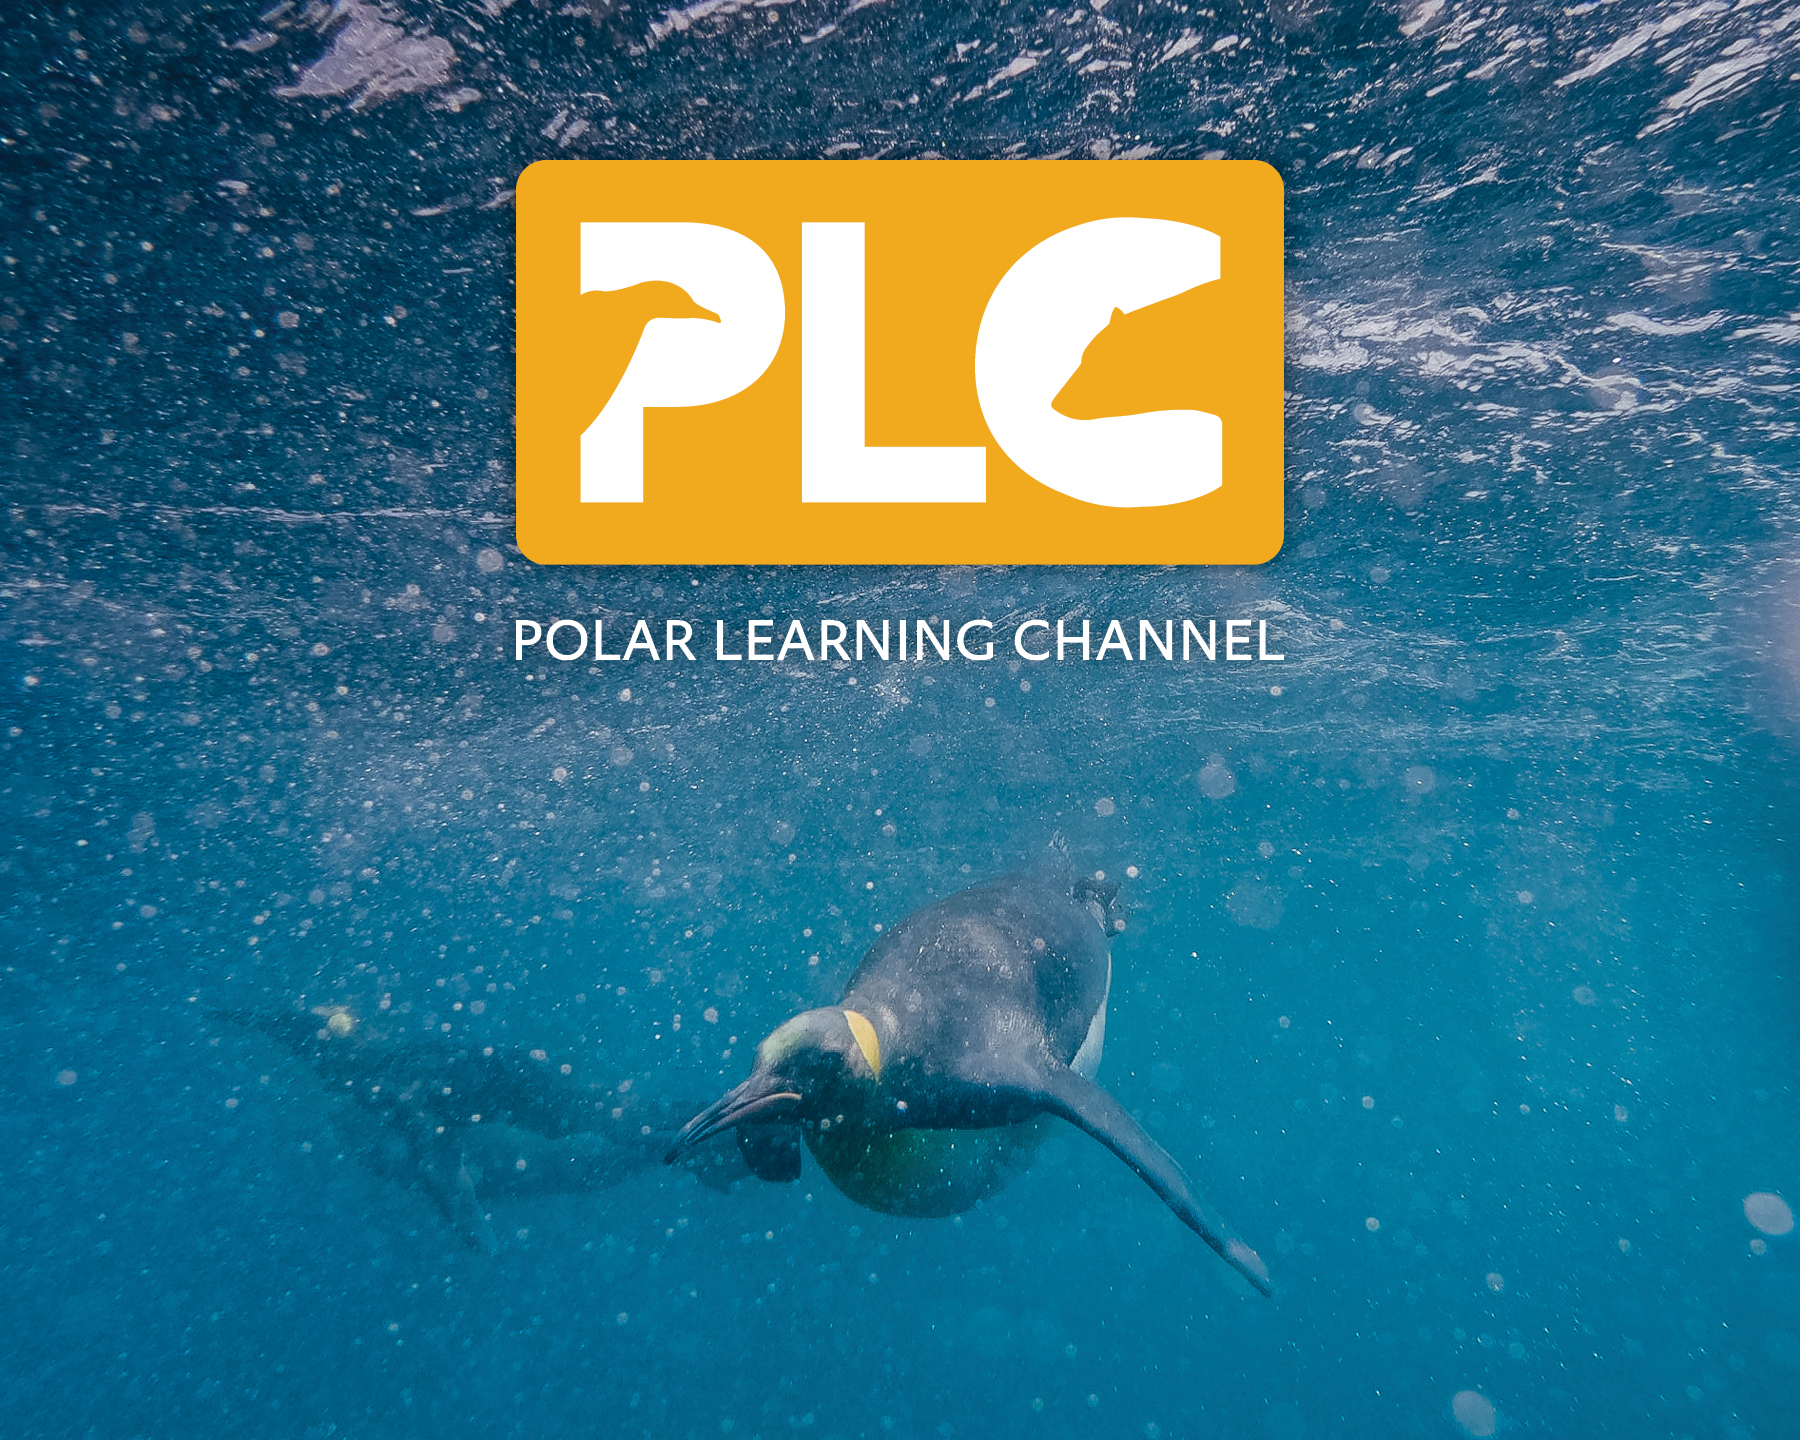 King penguin underwater, besides PLC logo